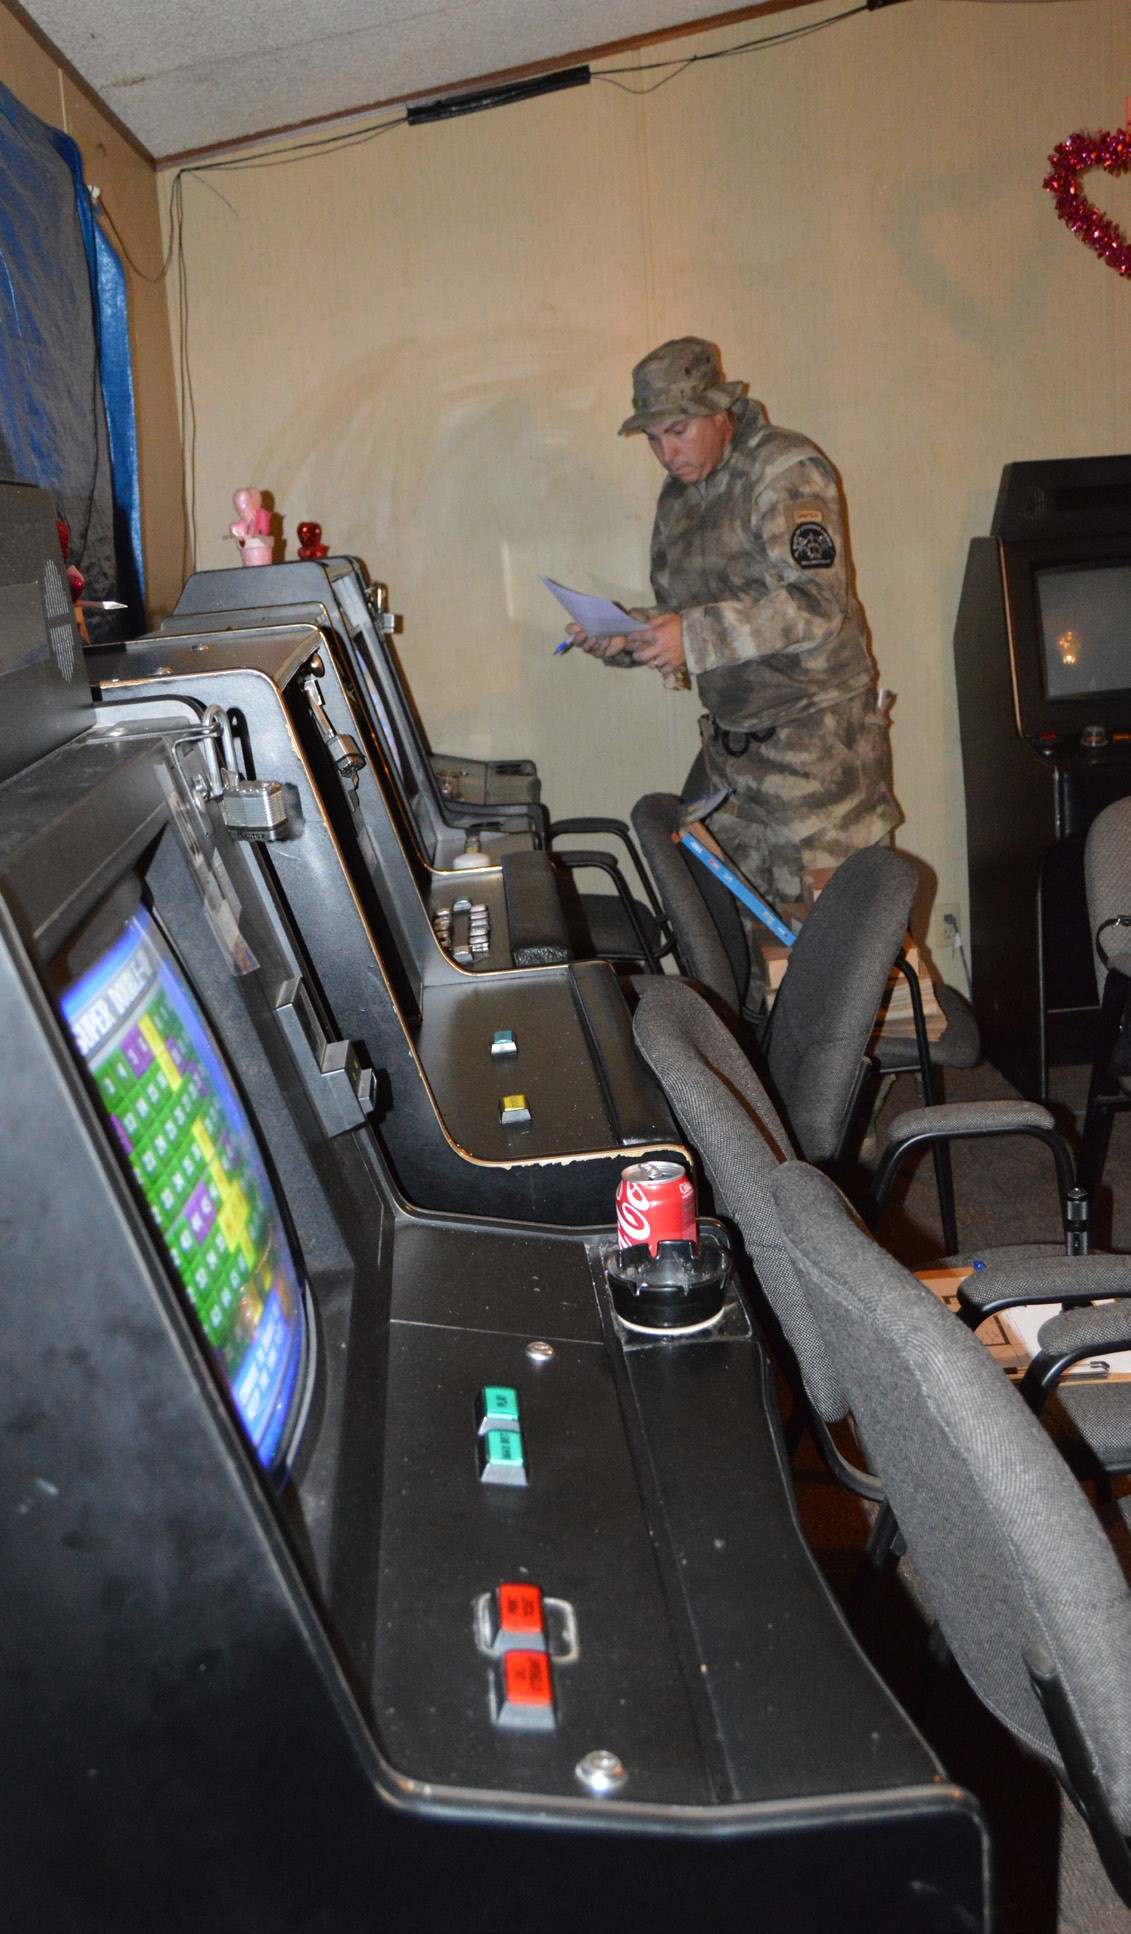 Sergeant Deputy Robert Newman surveys the illegal gambling machines before the motherboards are removed, rendering them useless.